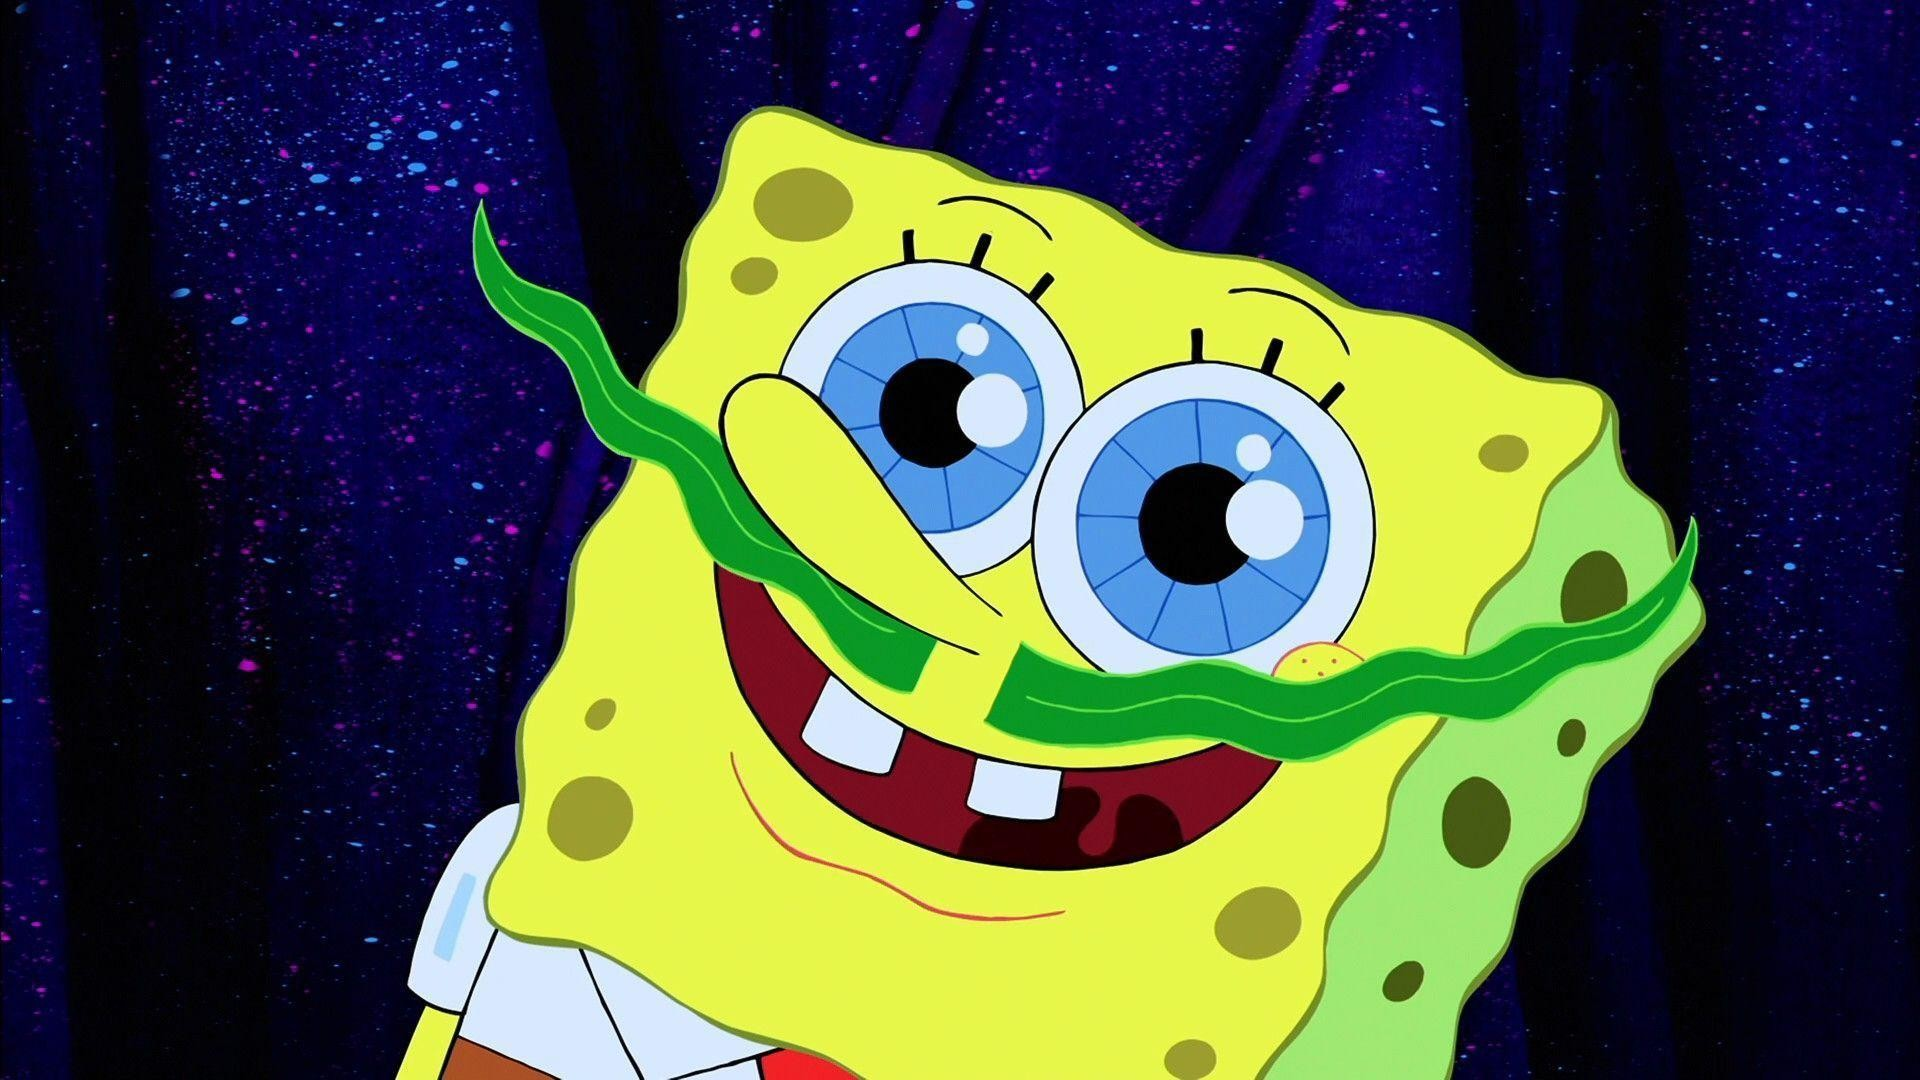 Res: 1920x1080, funny spongebob wallpaper 8 - | Images And Wallpapers - all free .